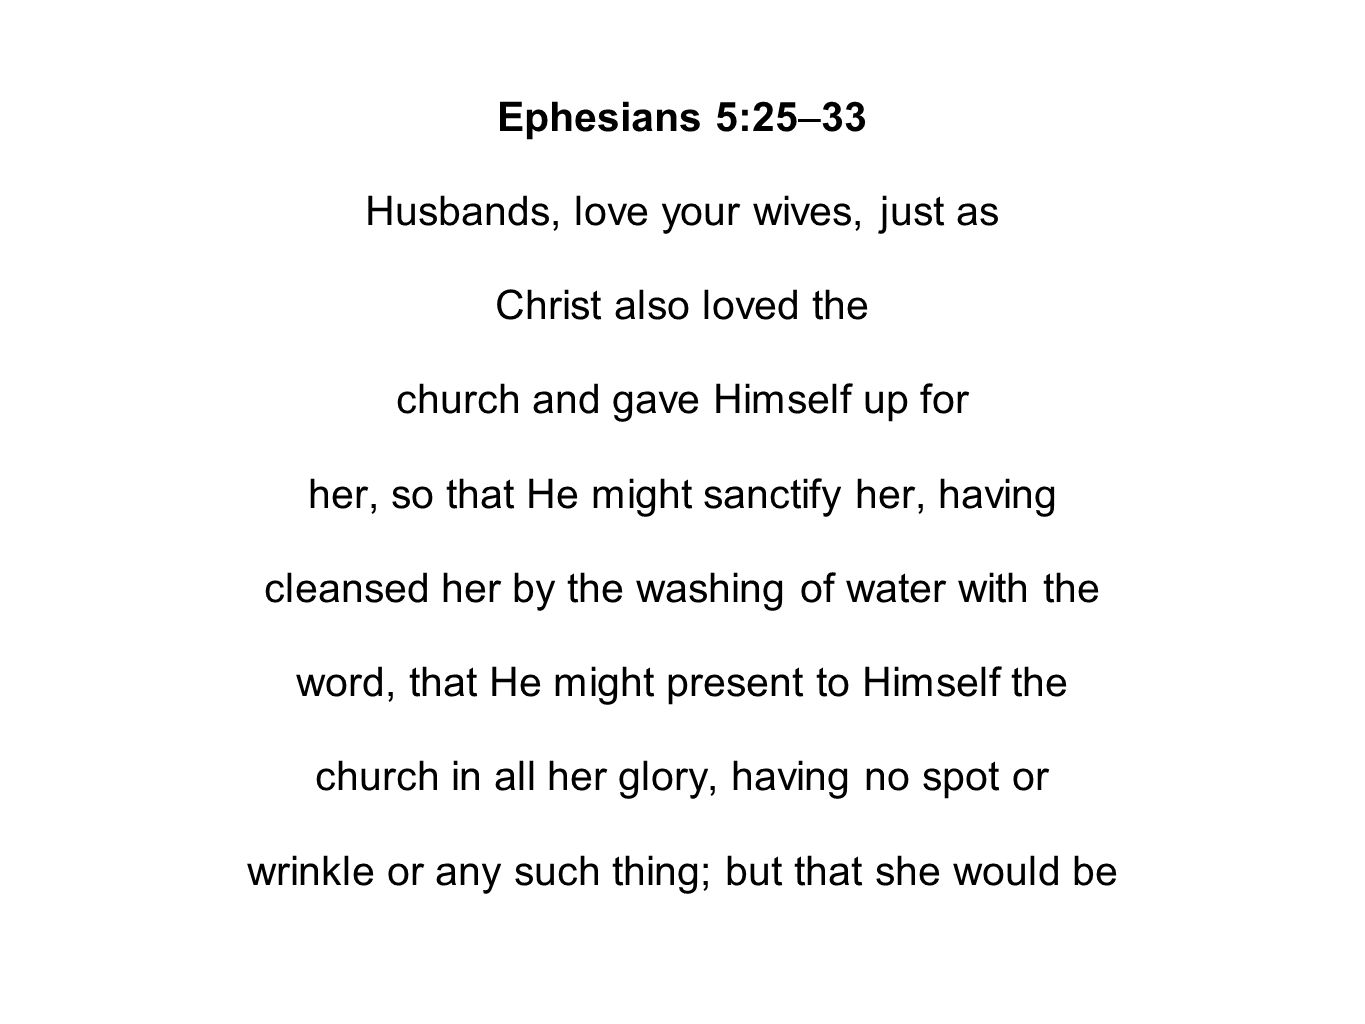 Ephesians 5:25–33 Husbands, love your wives, just as Christ also loved the church and gave Himself up for her, so that He might sanctify her, having cleansed her by the washing of water with the word, that He might present to Himself the church in all her glory, having no spot or wrinkle or any such thing; but that she would be